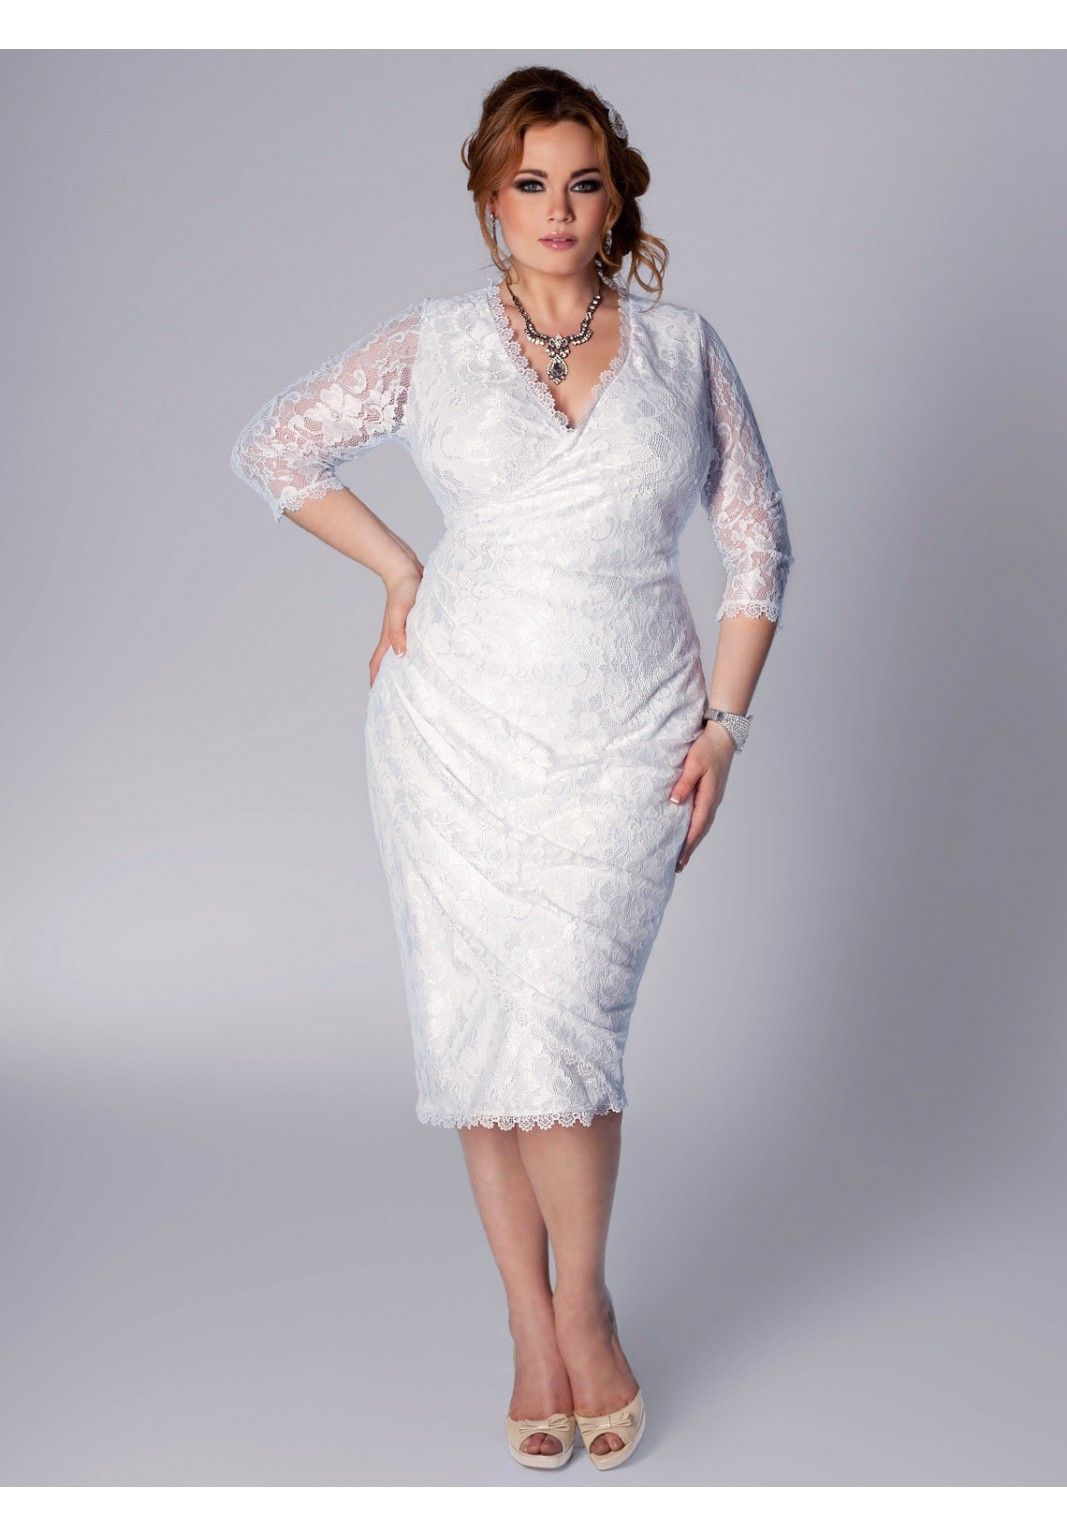 Gisela wedding dress plus size igigi by yuliya raquel for Dresses for registry office wedding